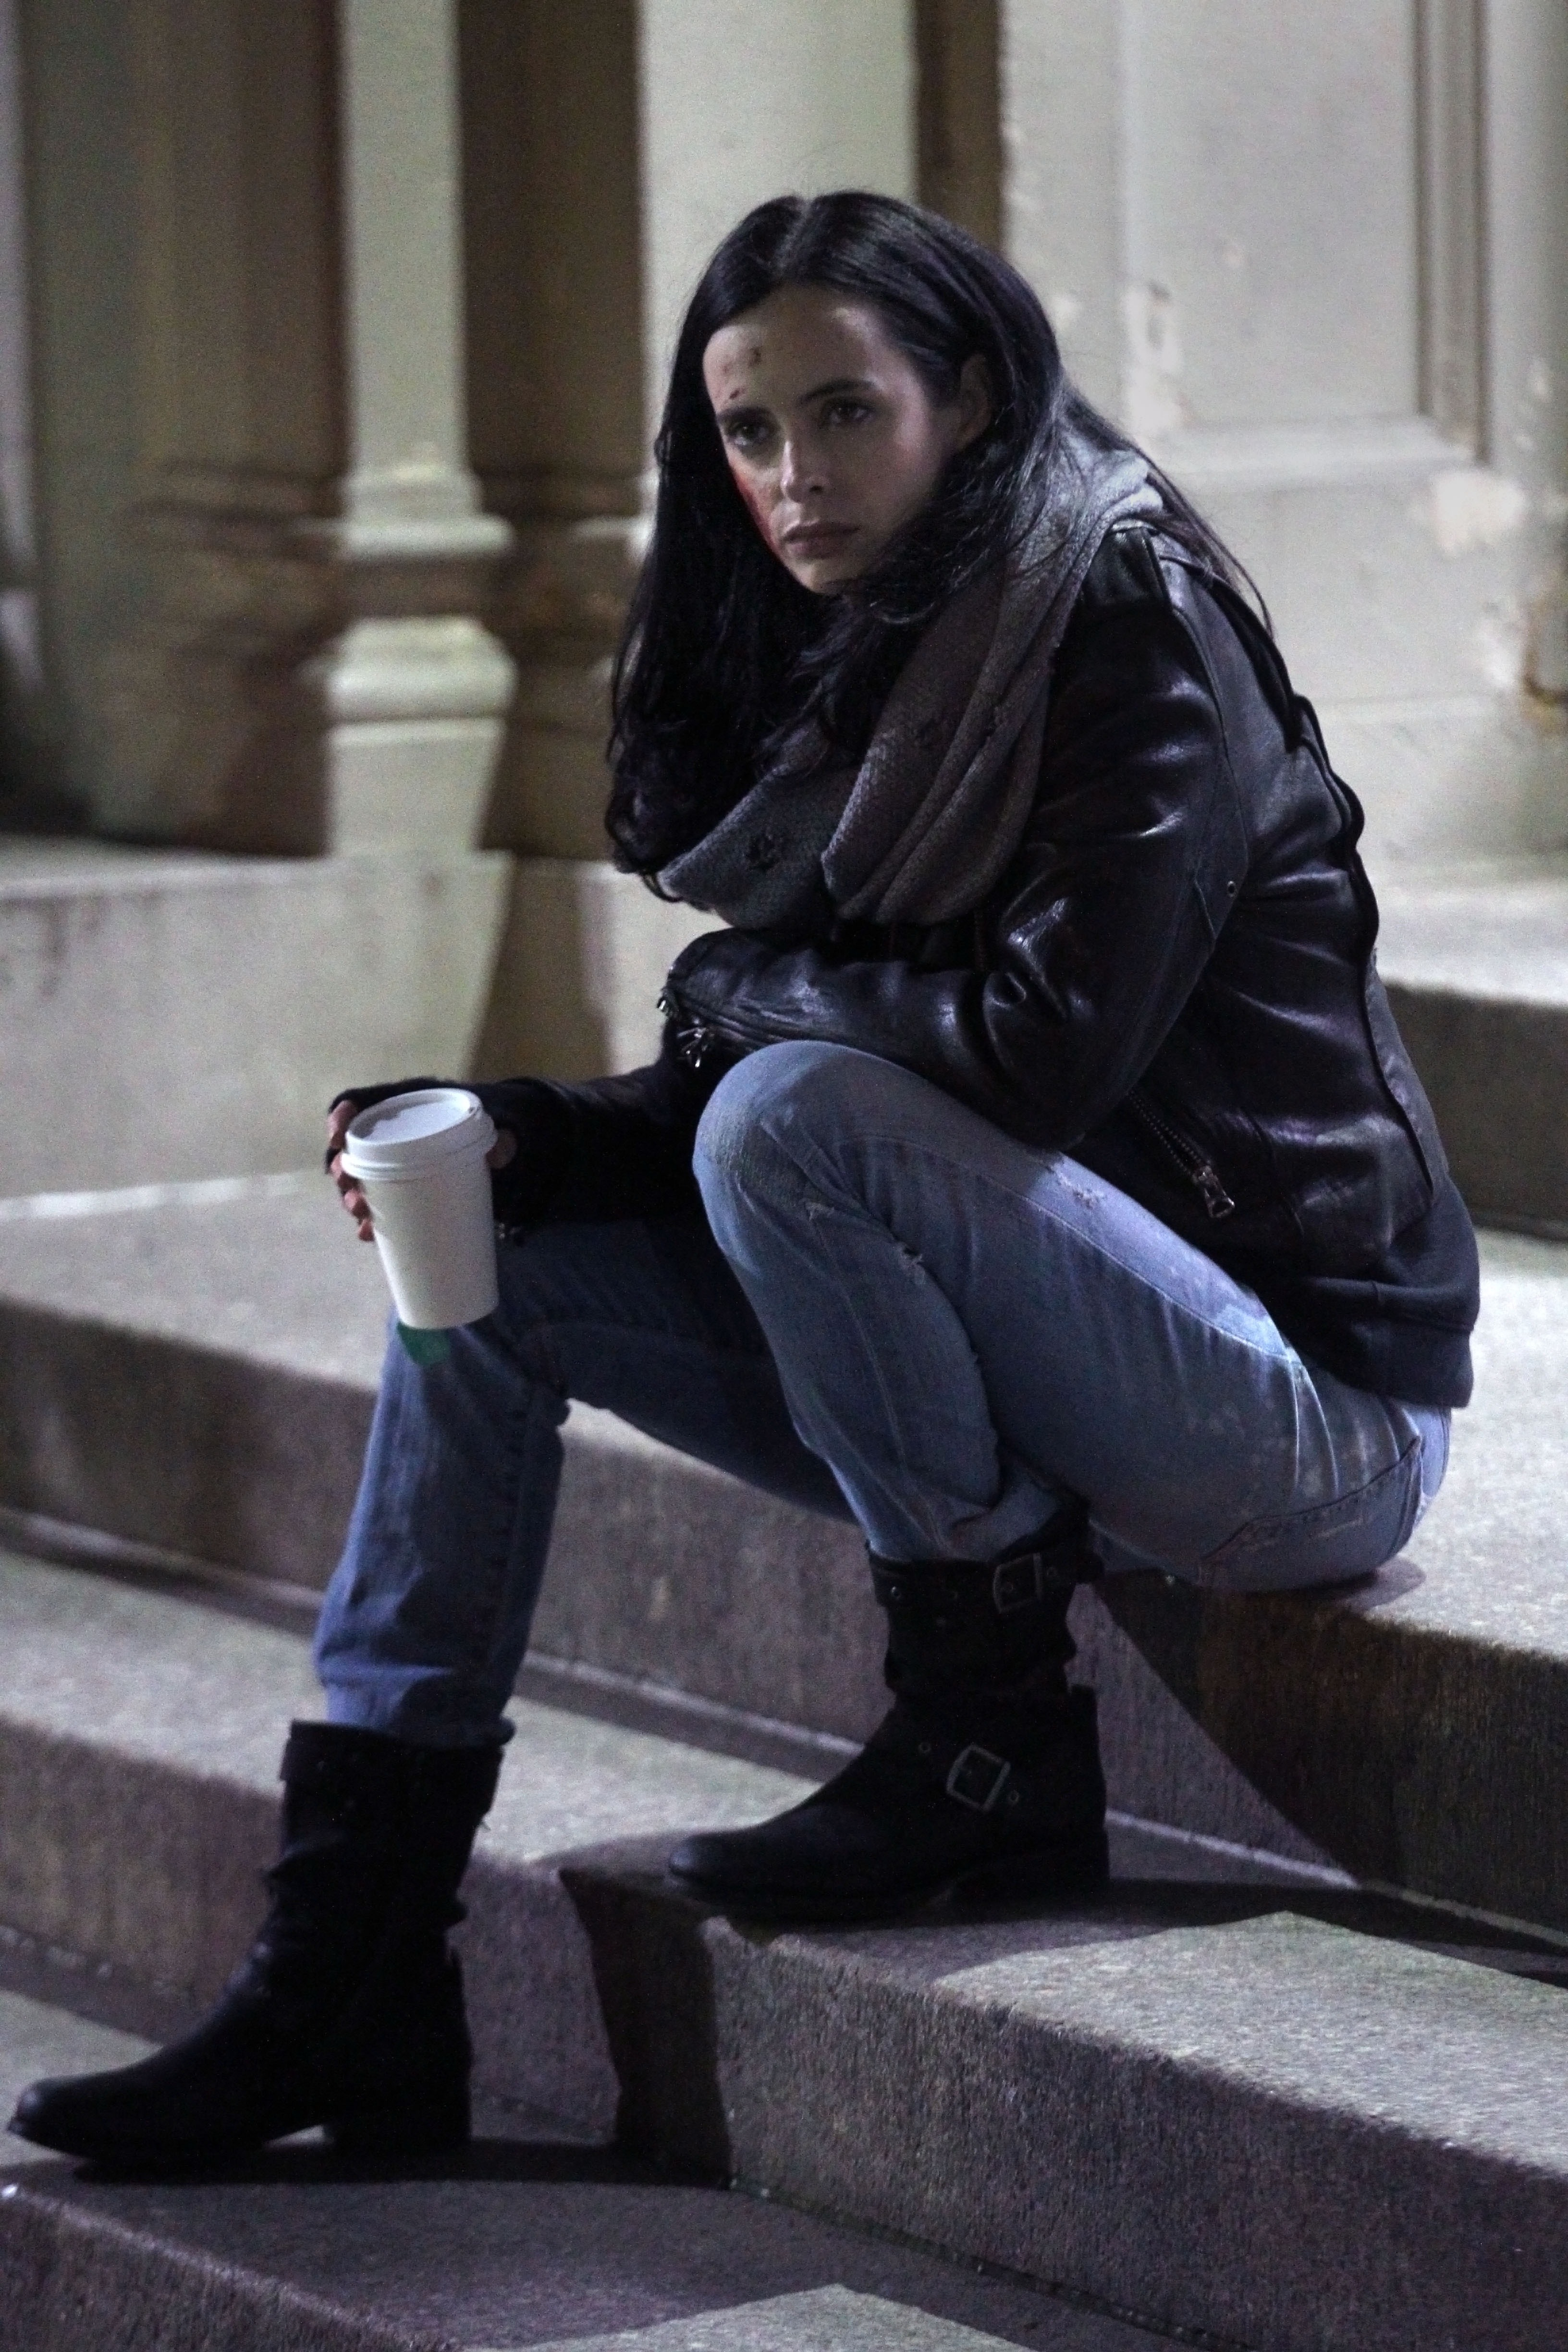 Sad Iphone Wallpaper There Are Brand New Pictures For Quot Jessica Jones Quot And They